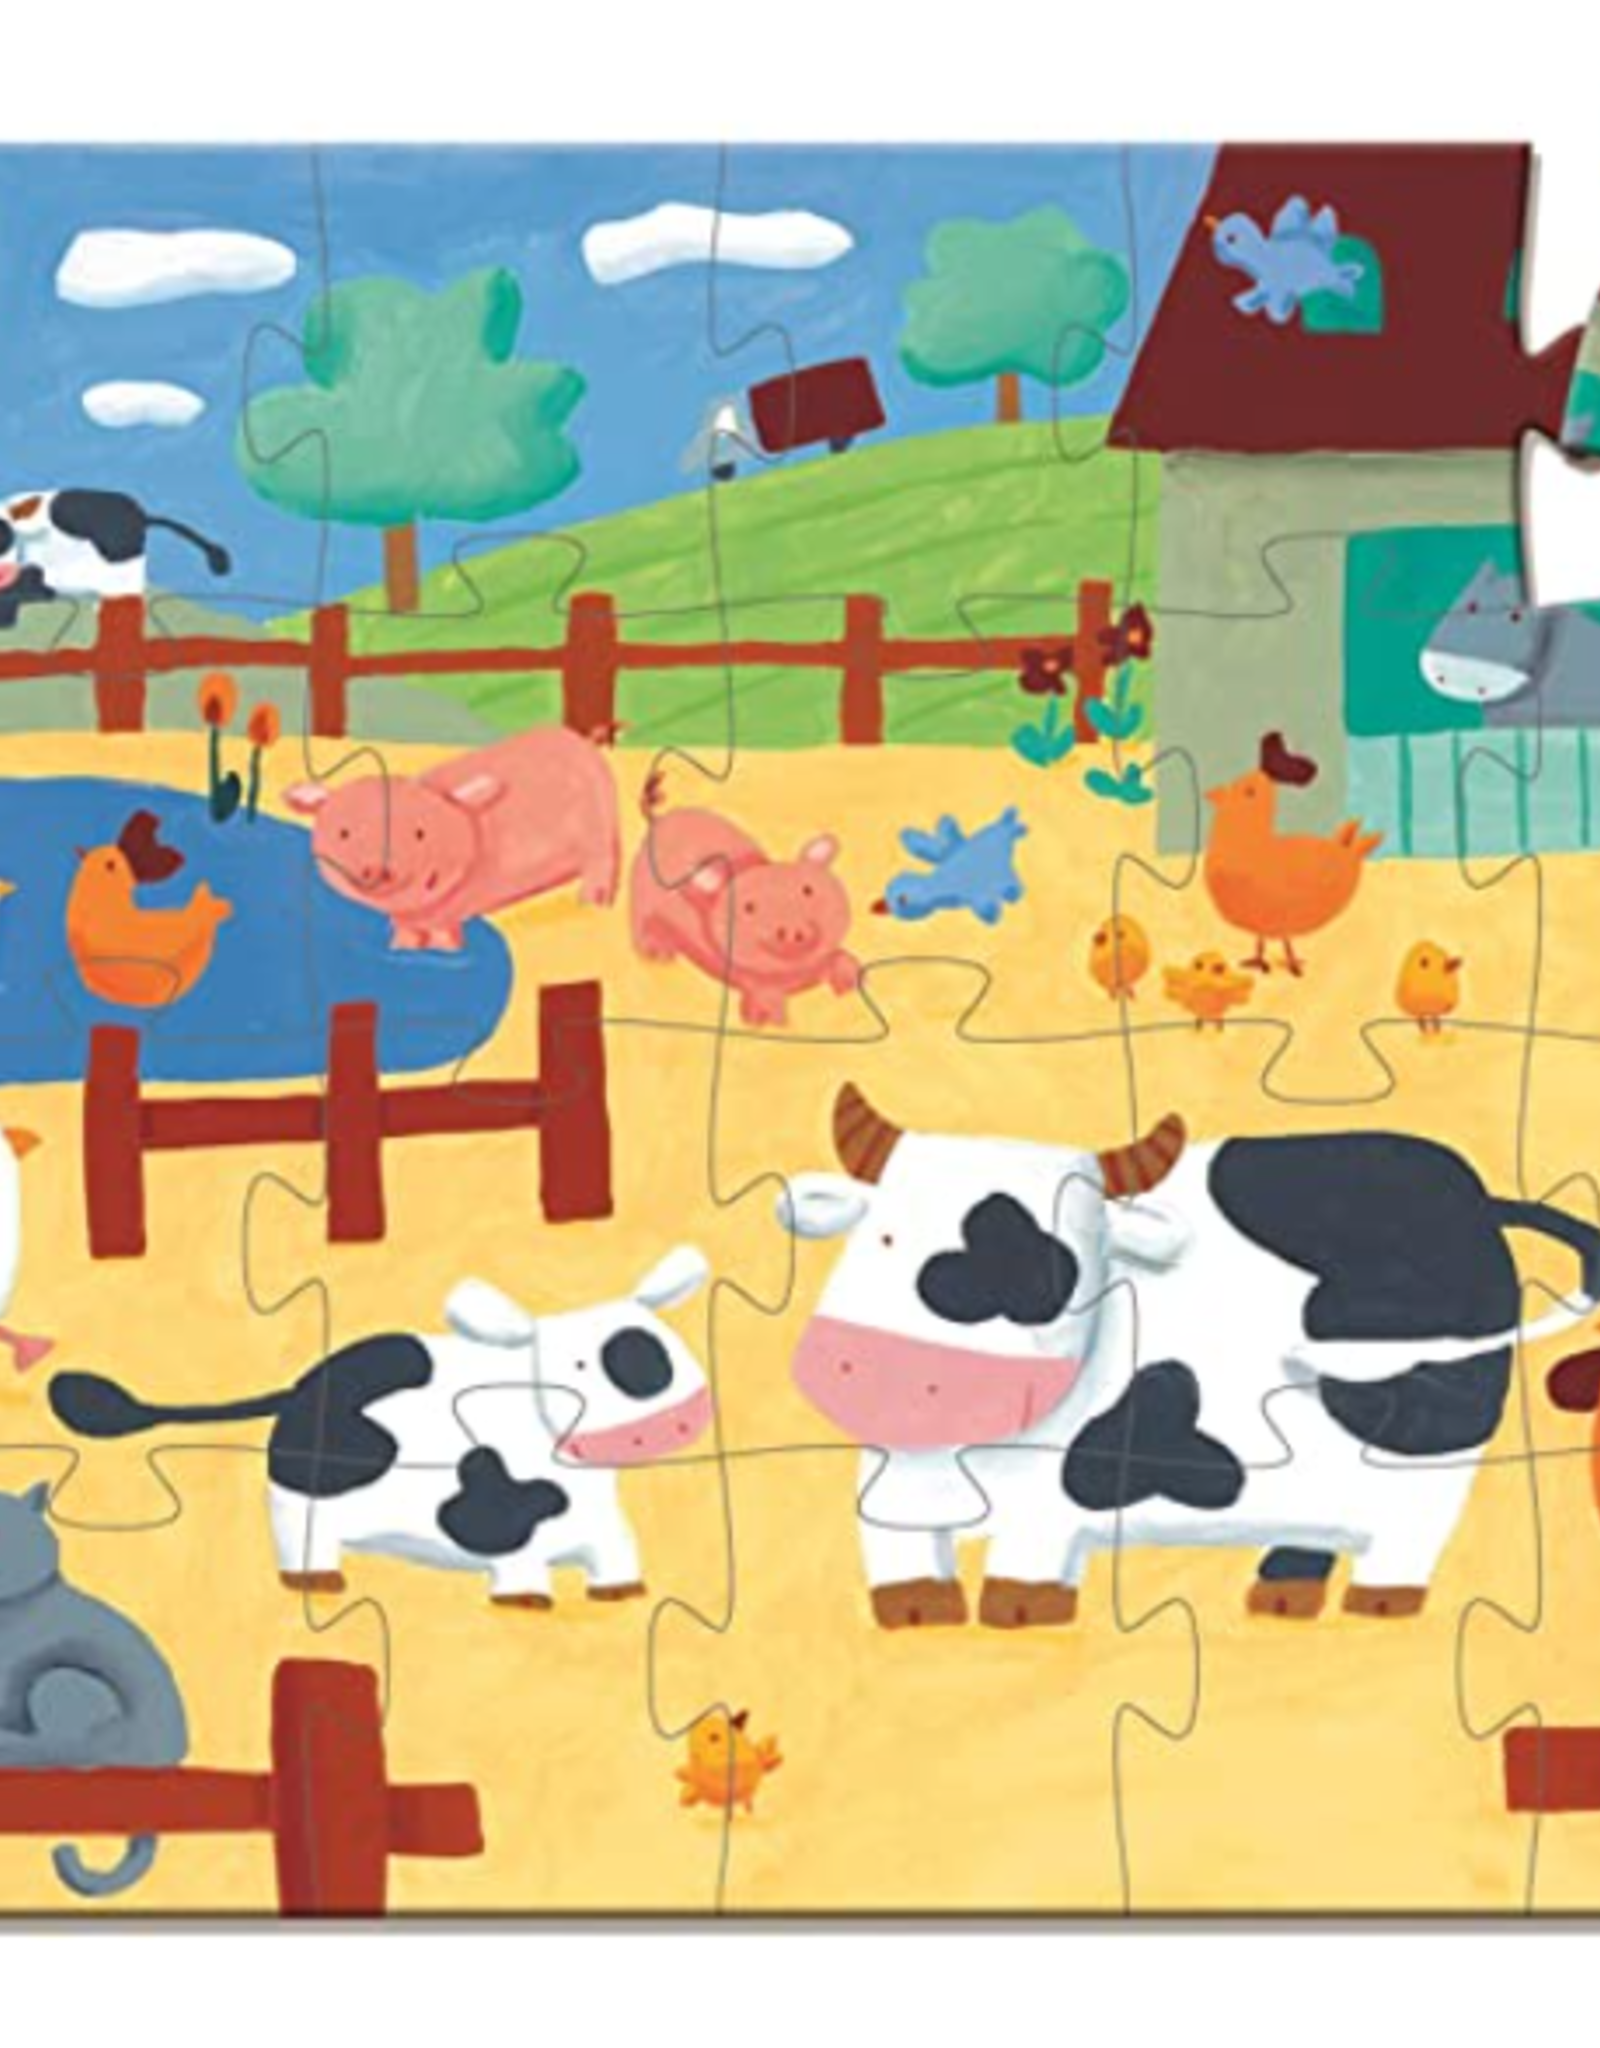 Djeco Silhouette Puzzle 24pc - The Cows on the Farm